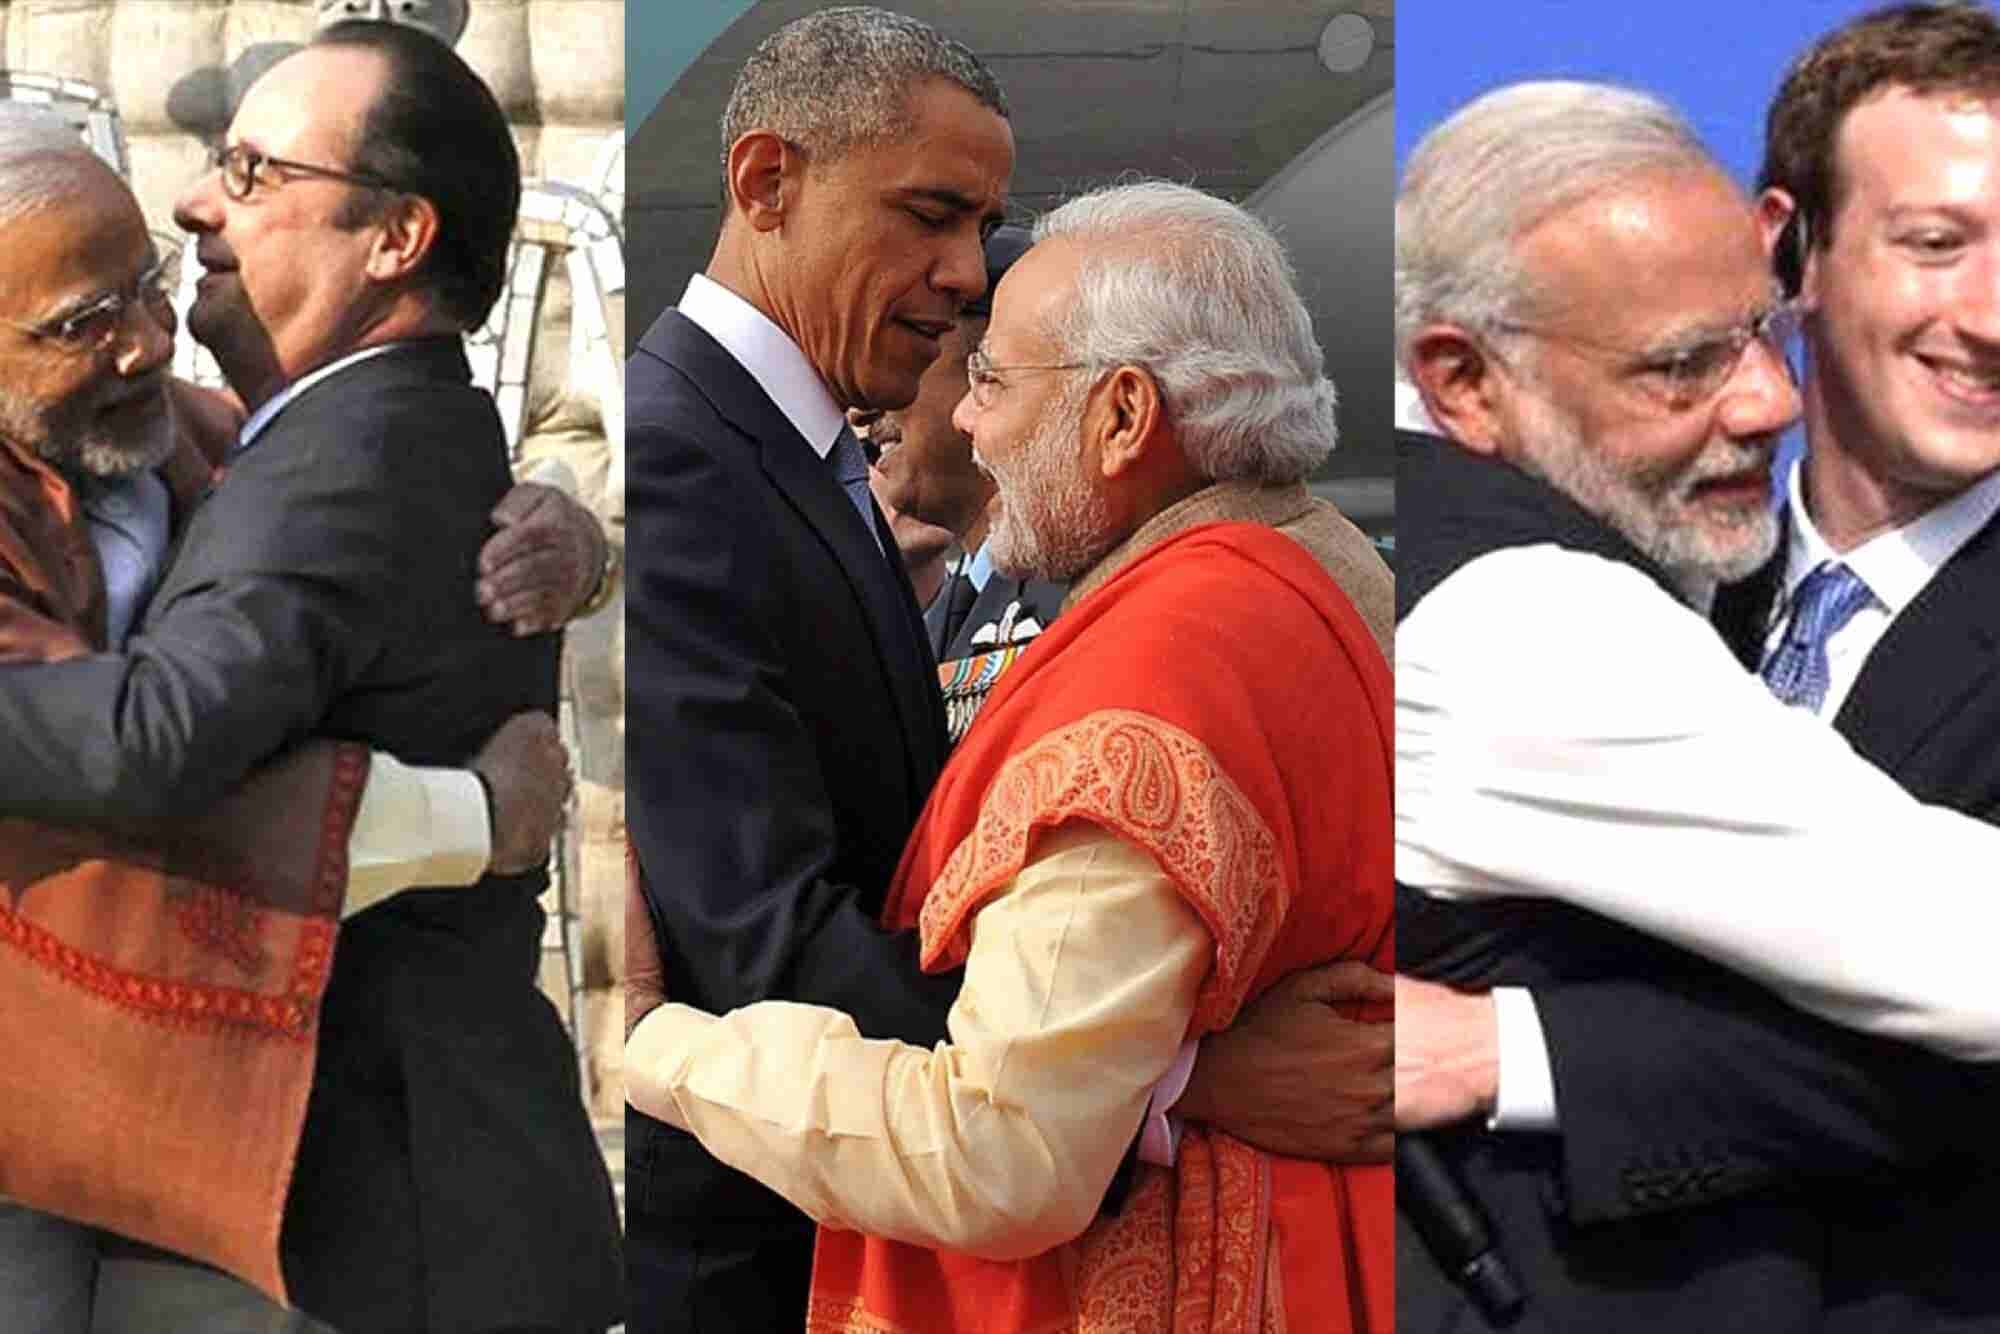 Hugging is not personal, it's business